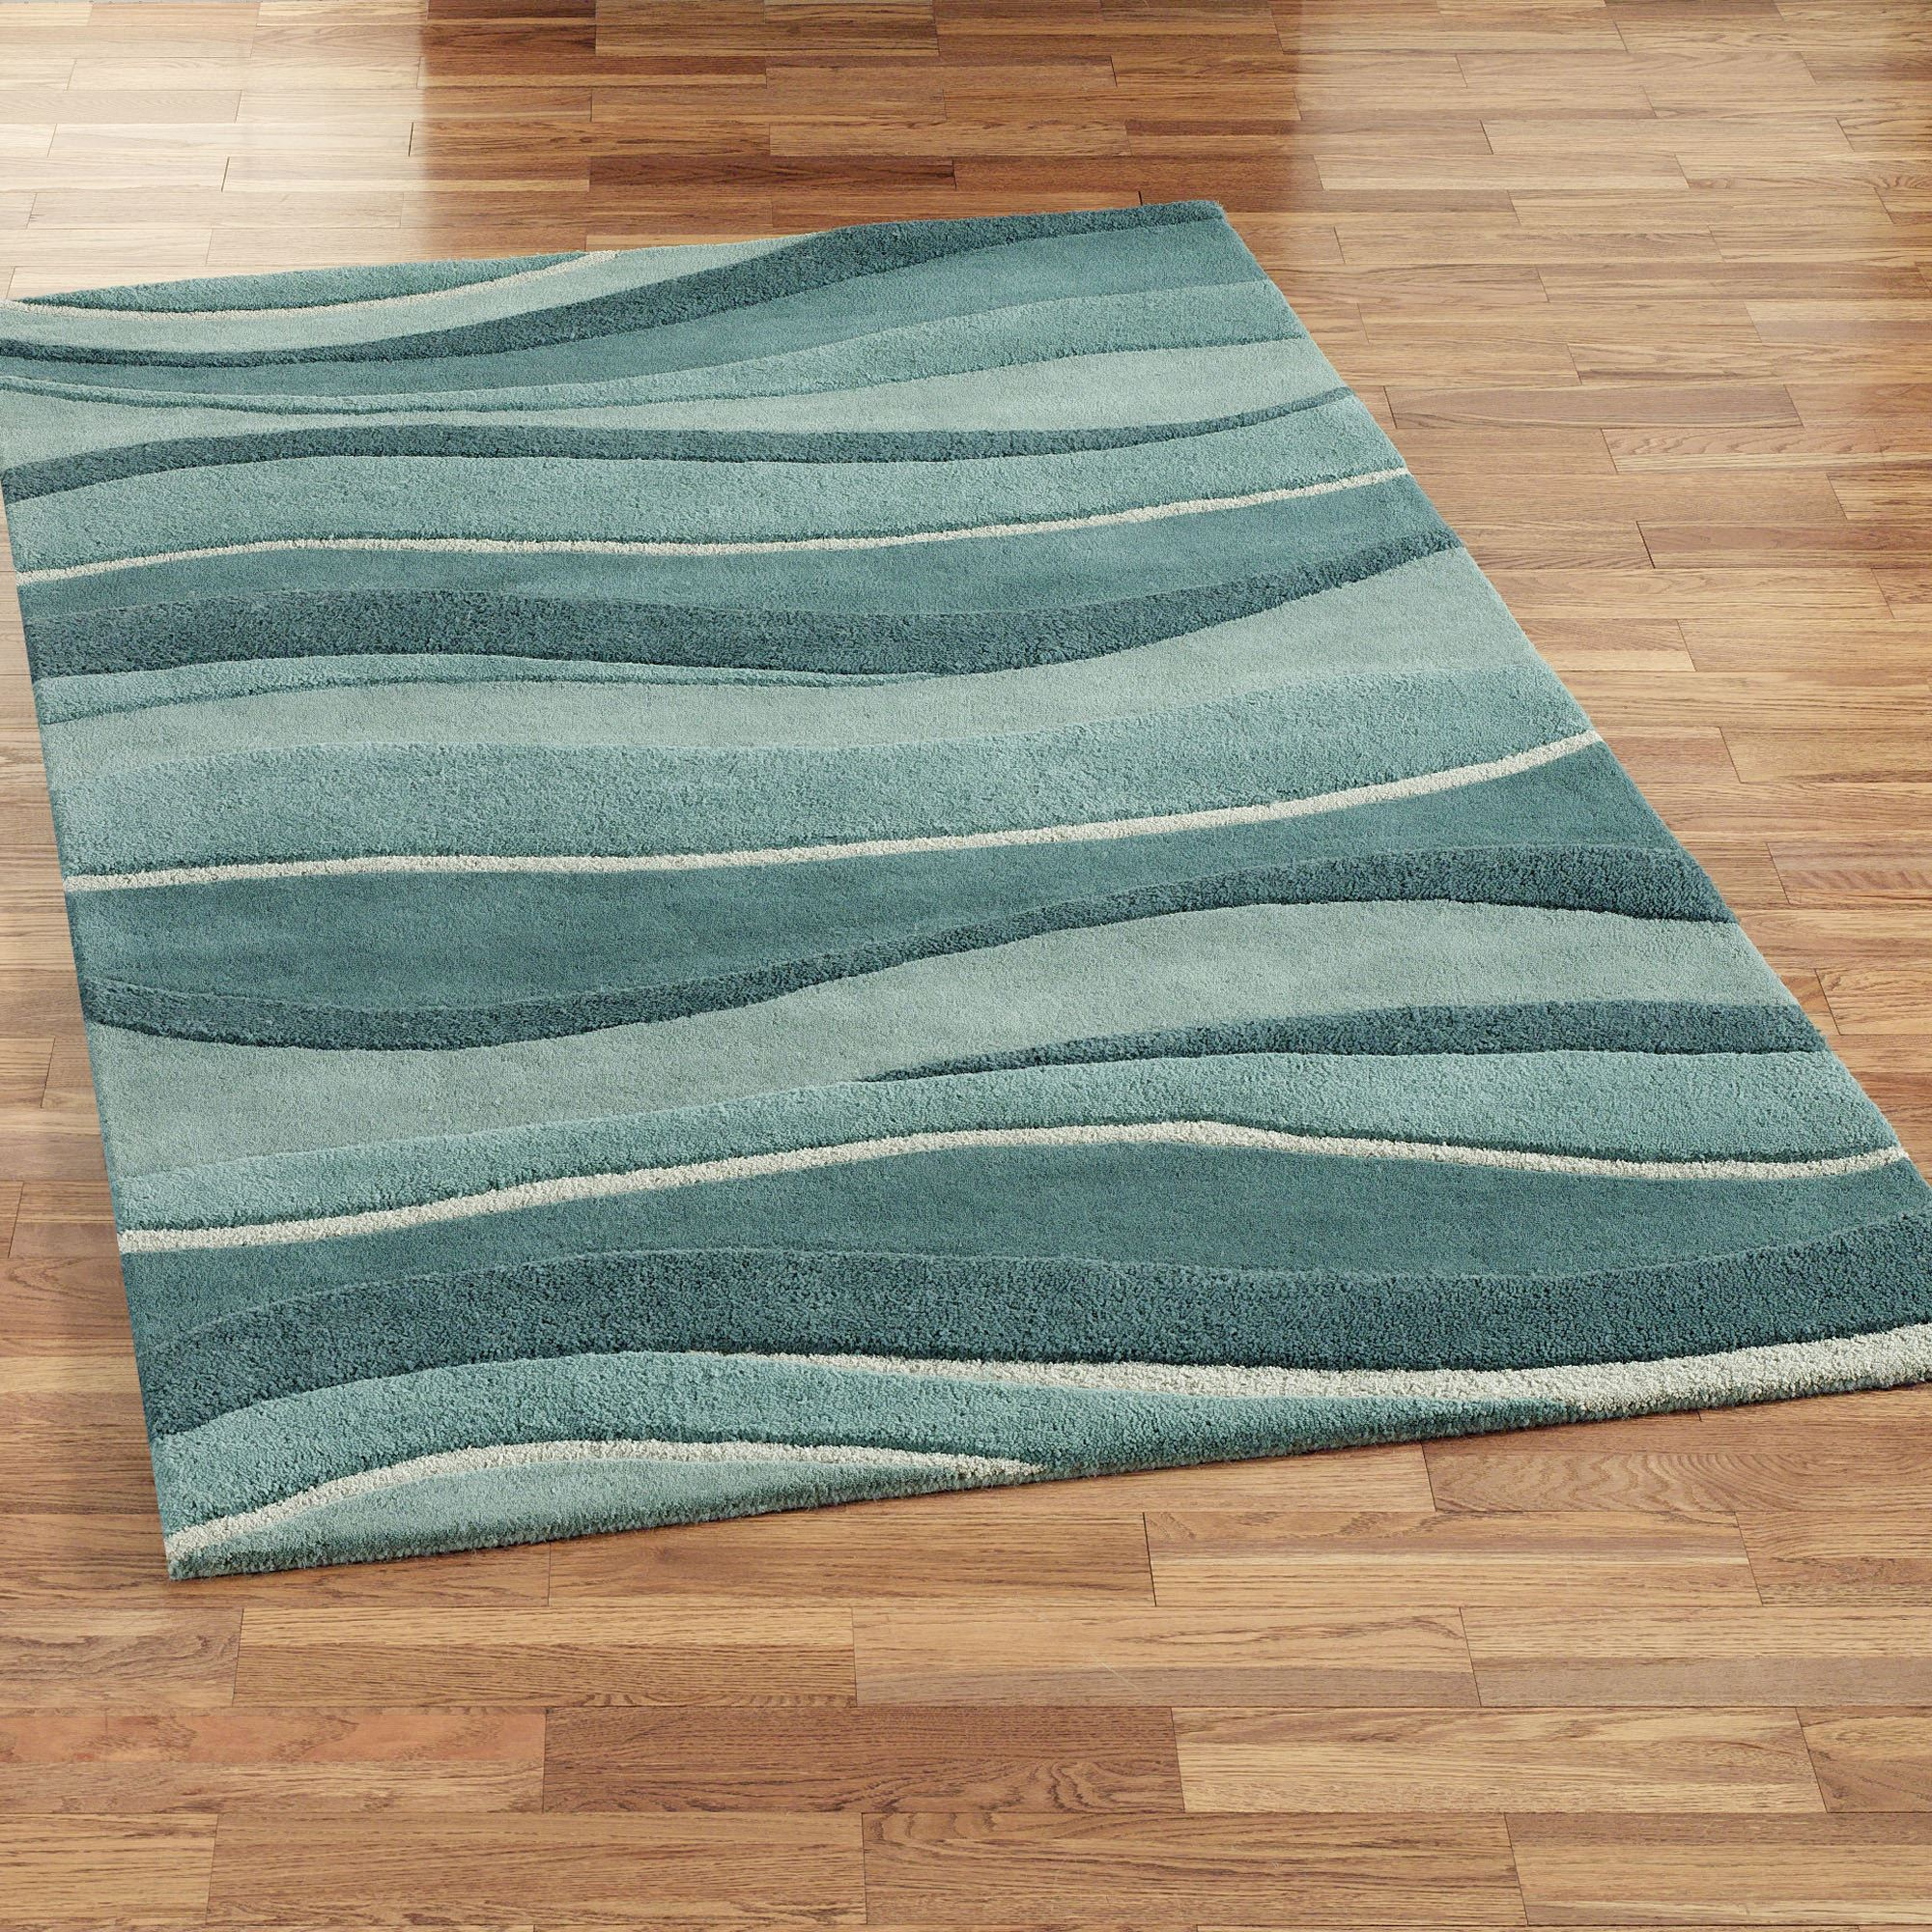 Teal Color Area Rugs Ocean Landscapes Wool Area Rugs